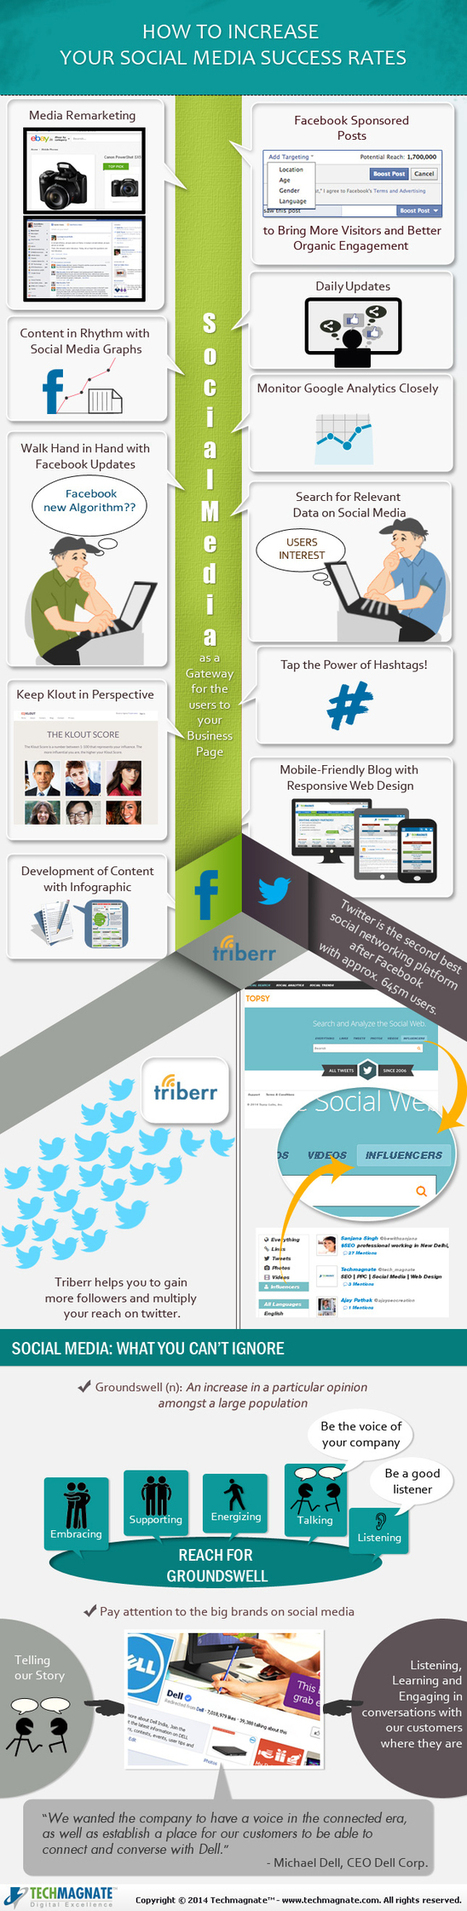 Social Media Infographic: How To Increase Your Success Rates? | e-commerce & social media | Scoop.it